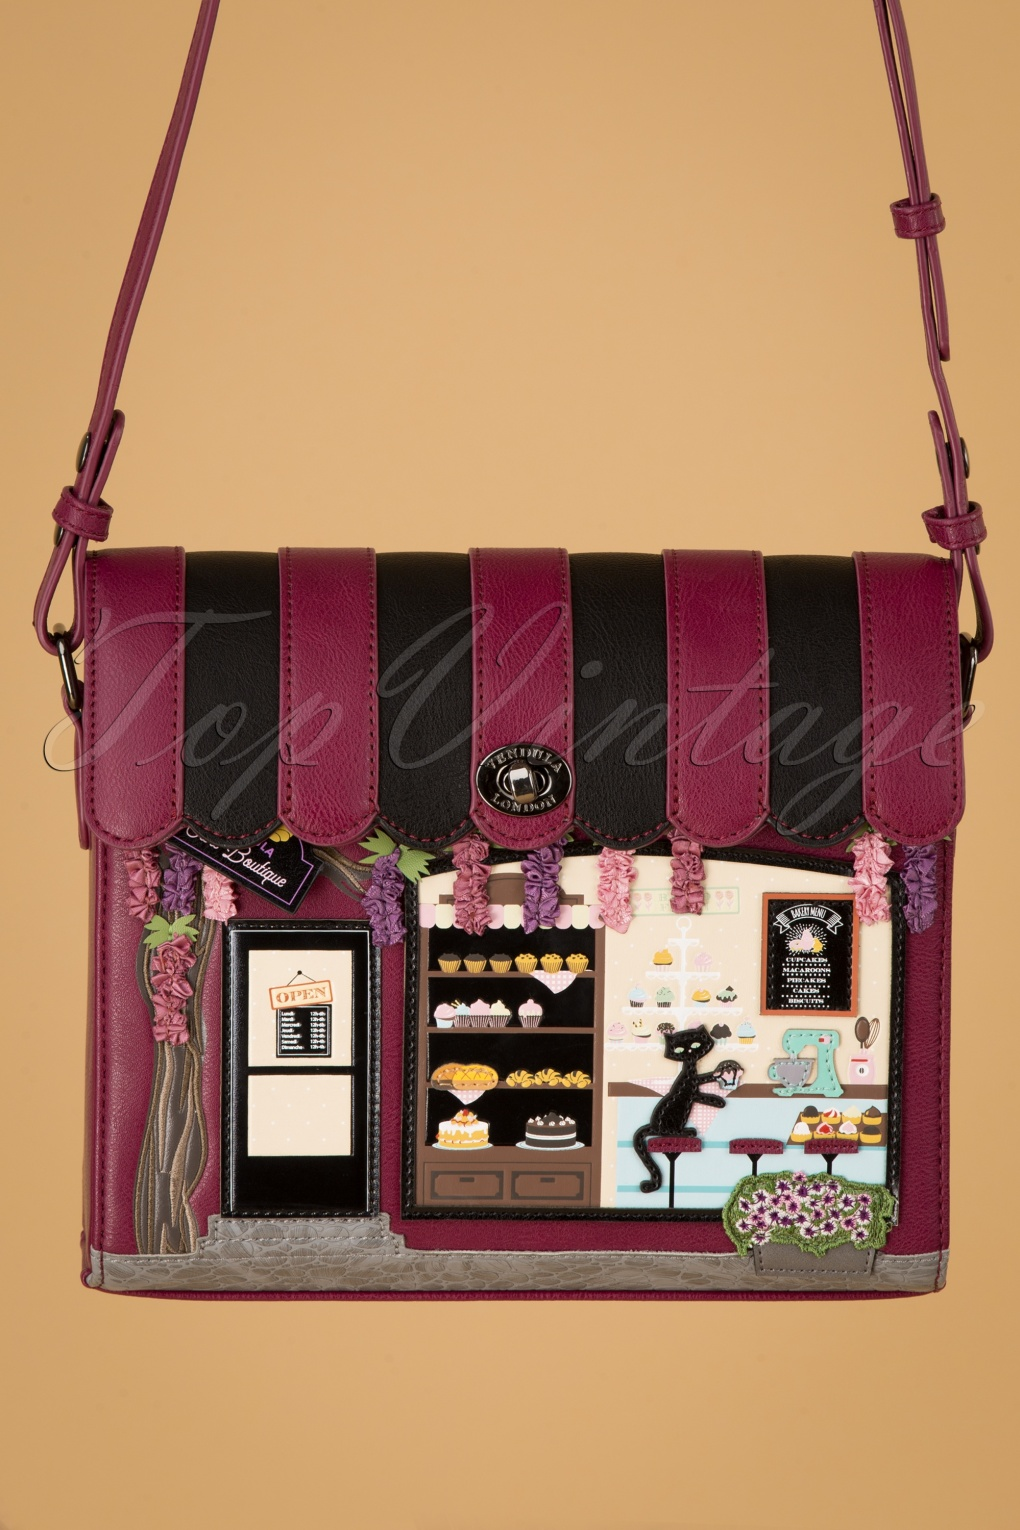 1950s Handbags, Purses, and Evening Bag Styles 50s Cake Boutique Box Bag in Black and Magenta £82.67 AT vintagedancer.com